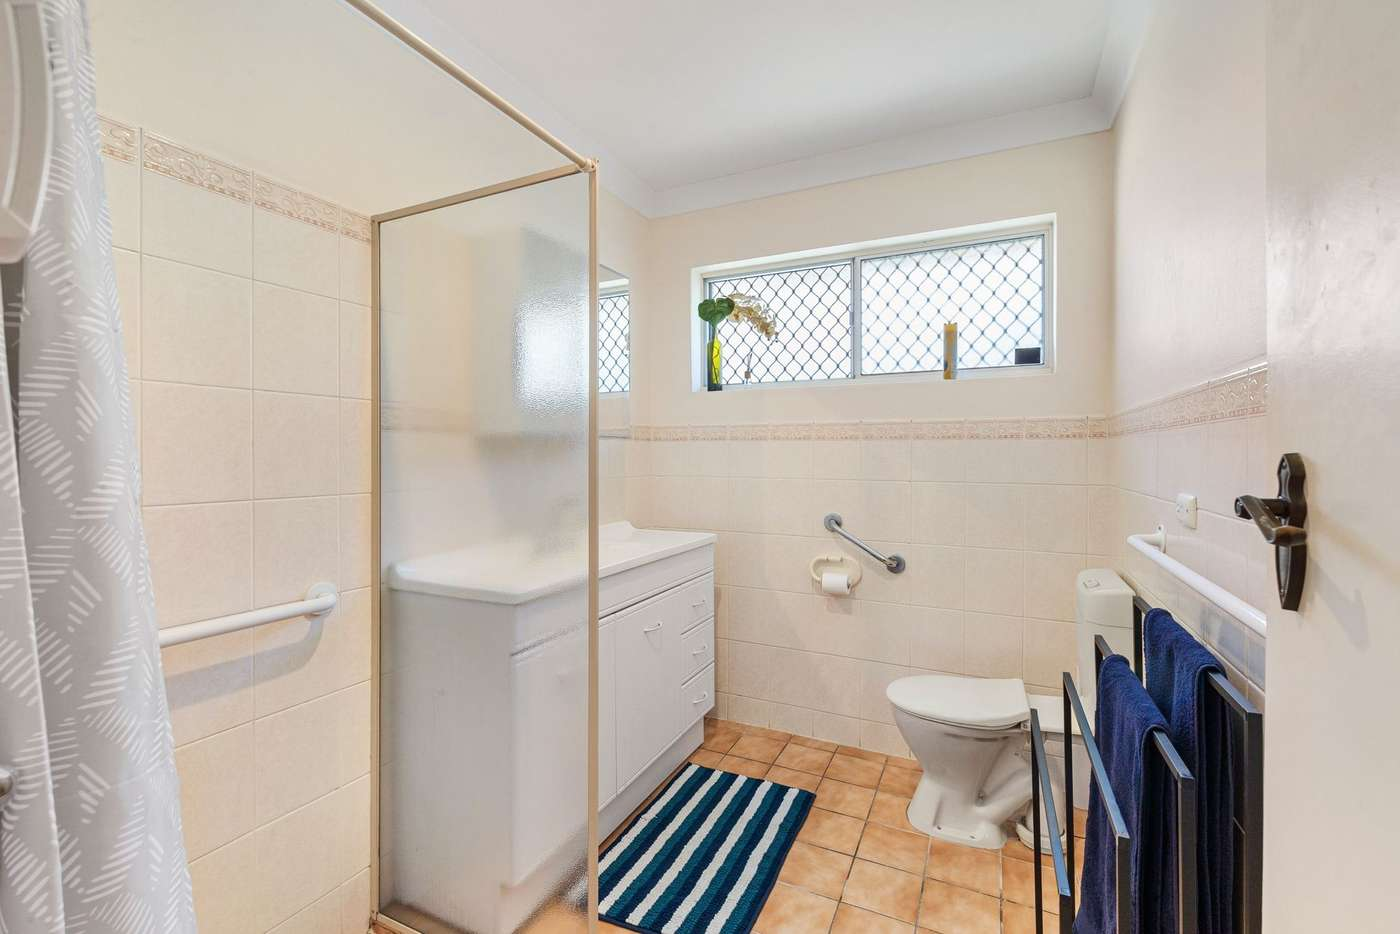 Sixth view of Homely unit listing, 4/21 Woodville Road, Woodville South SA 5011